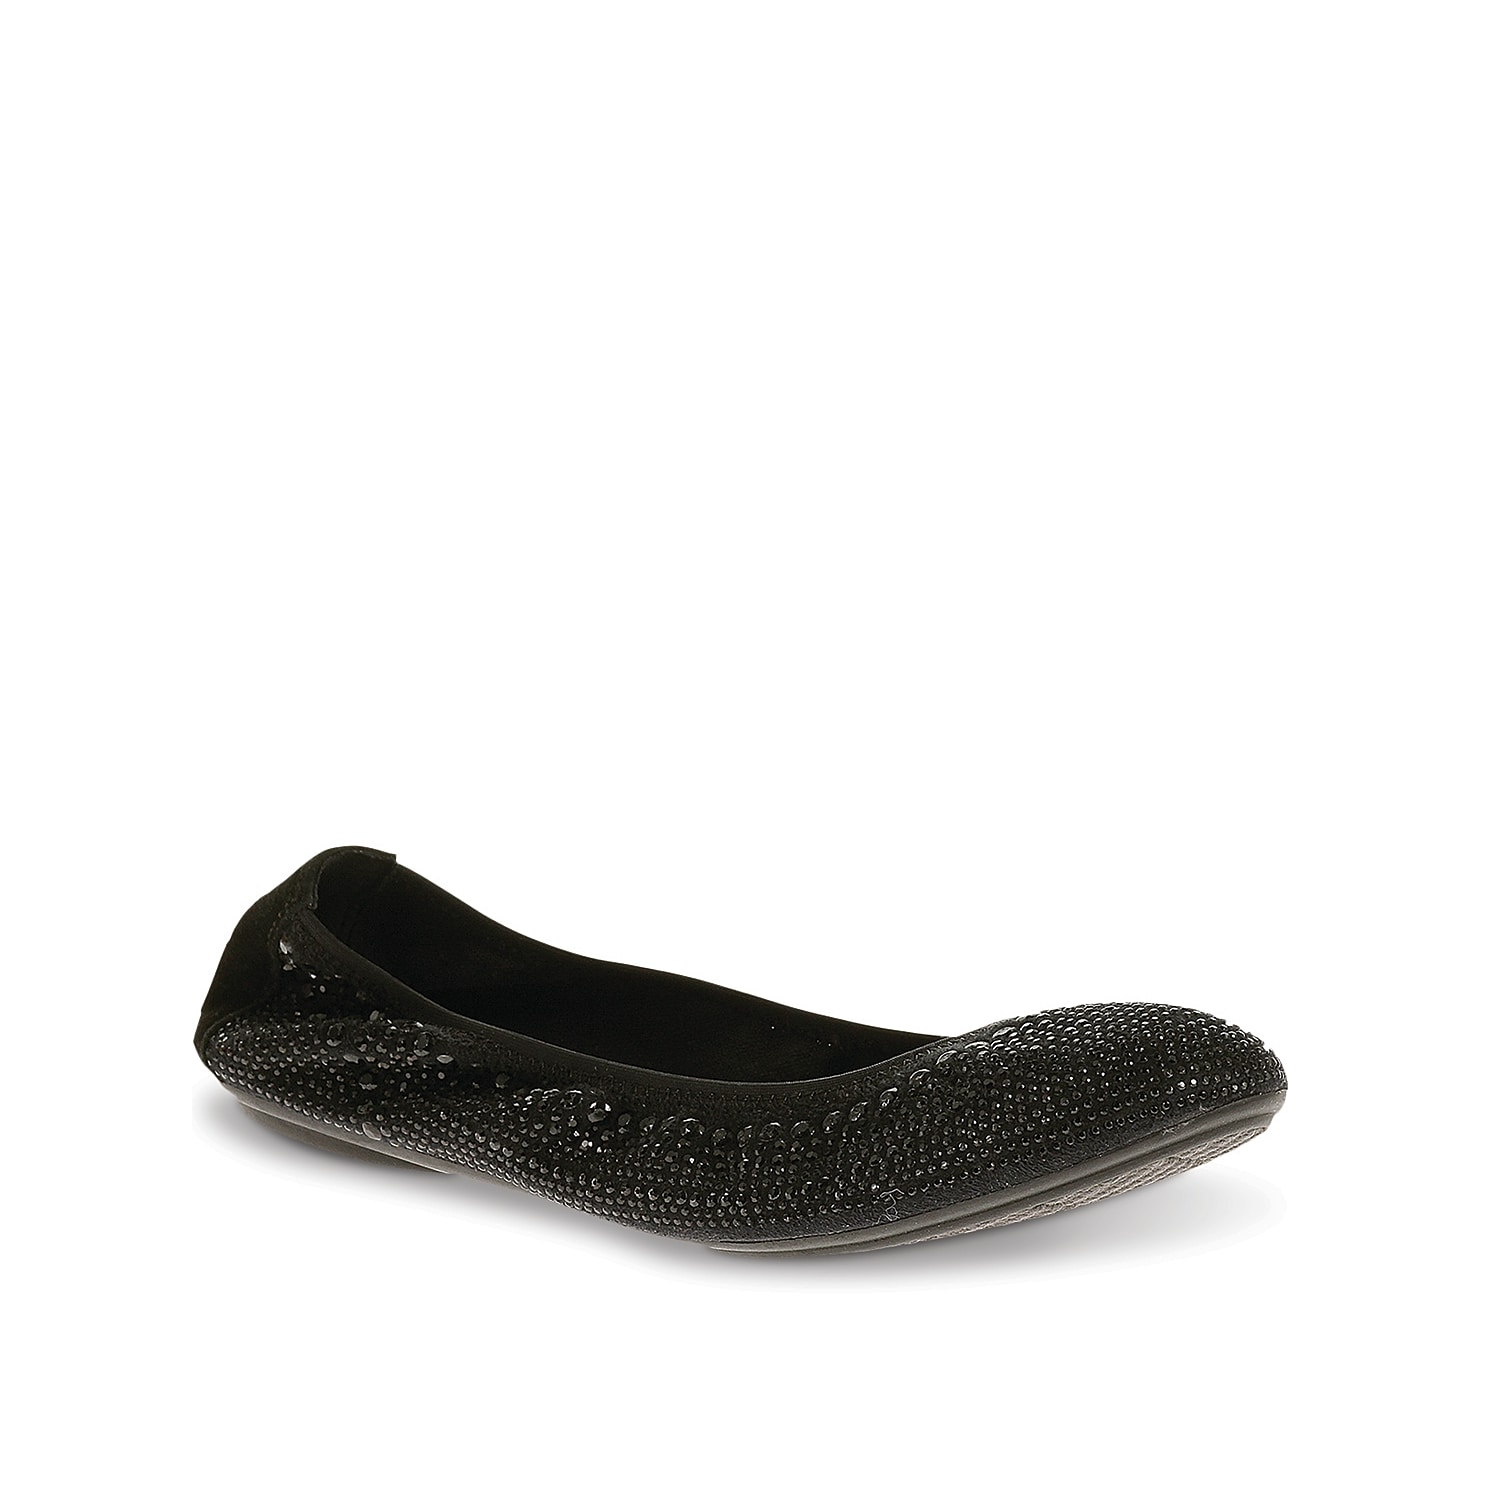 Stay comfortable in the Hush Puppies Chaste ballet slip-on. This flat features WaveReflex® technology for superior flexibility that will take you wherever you need to go!